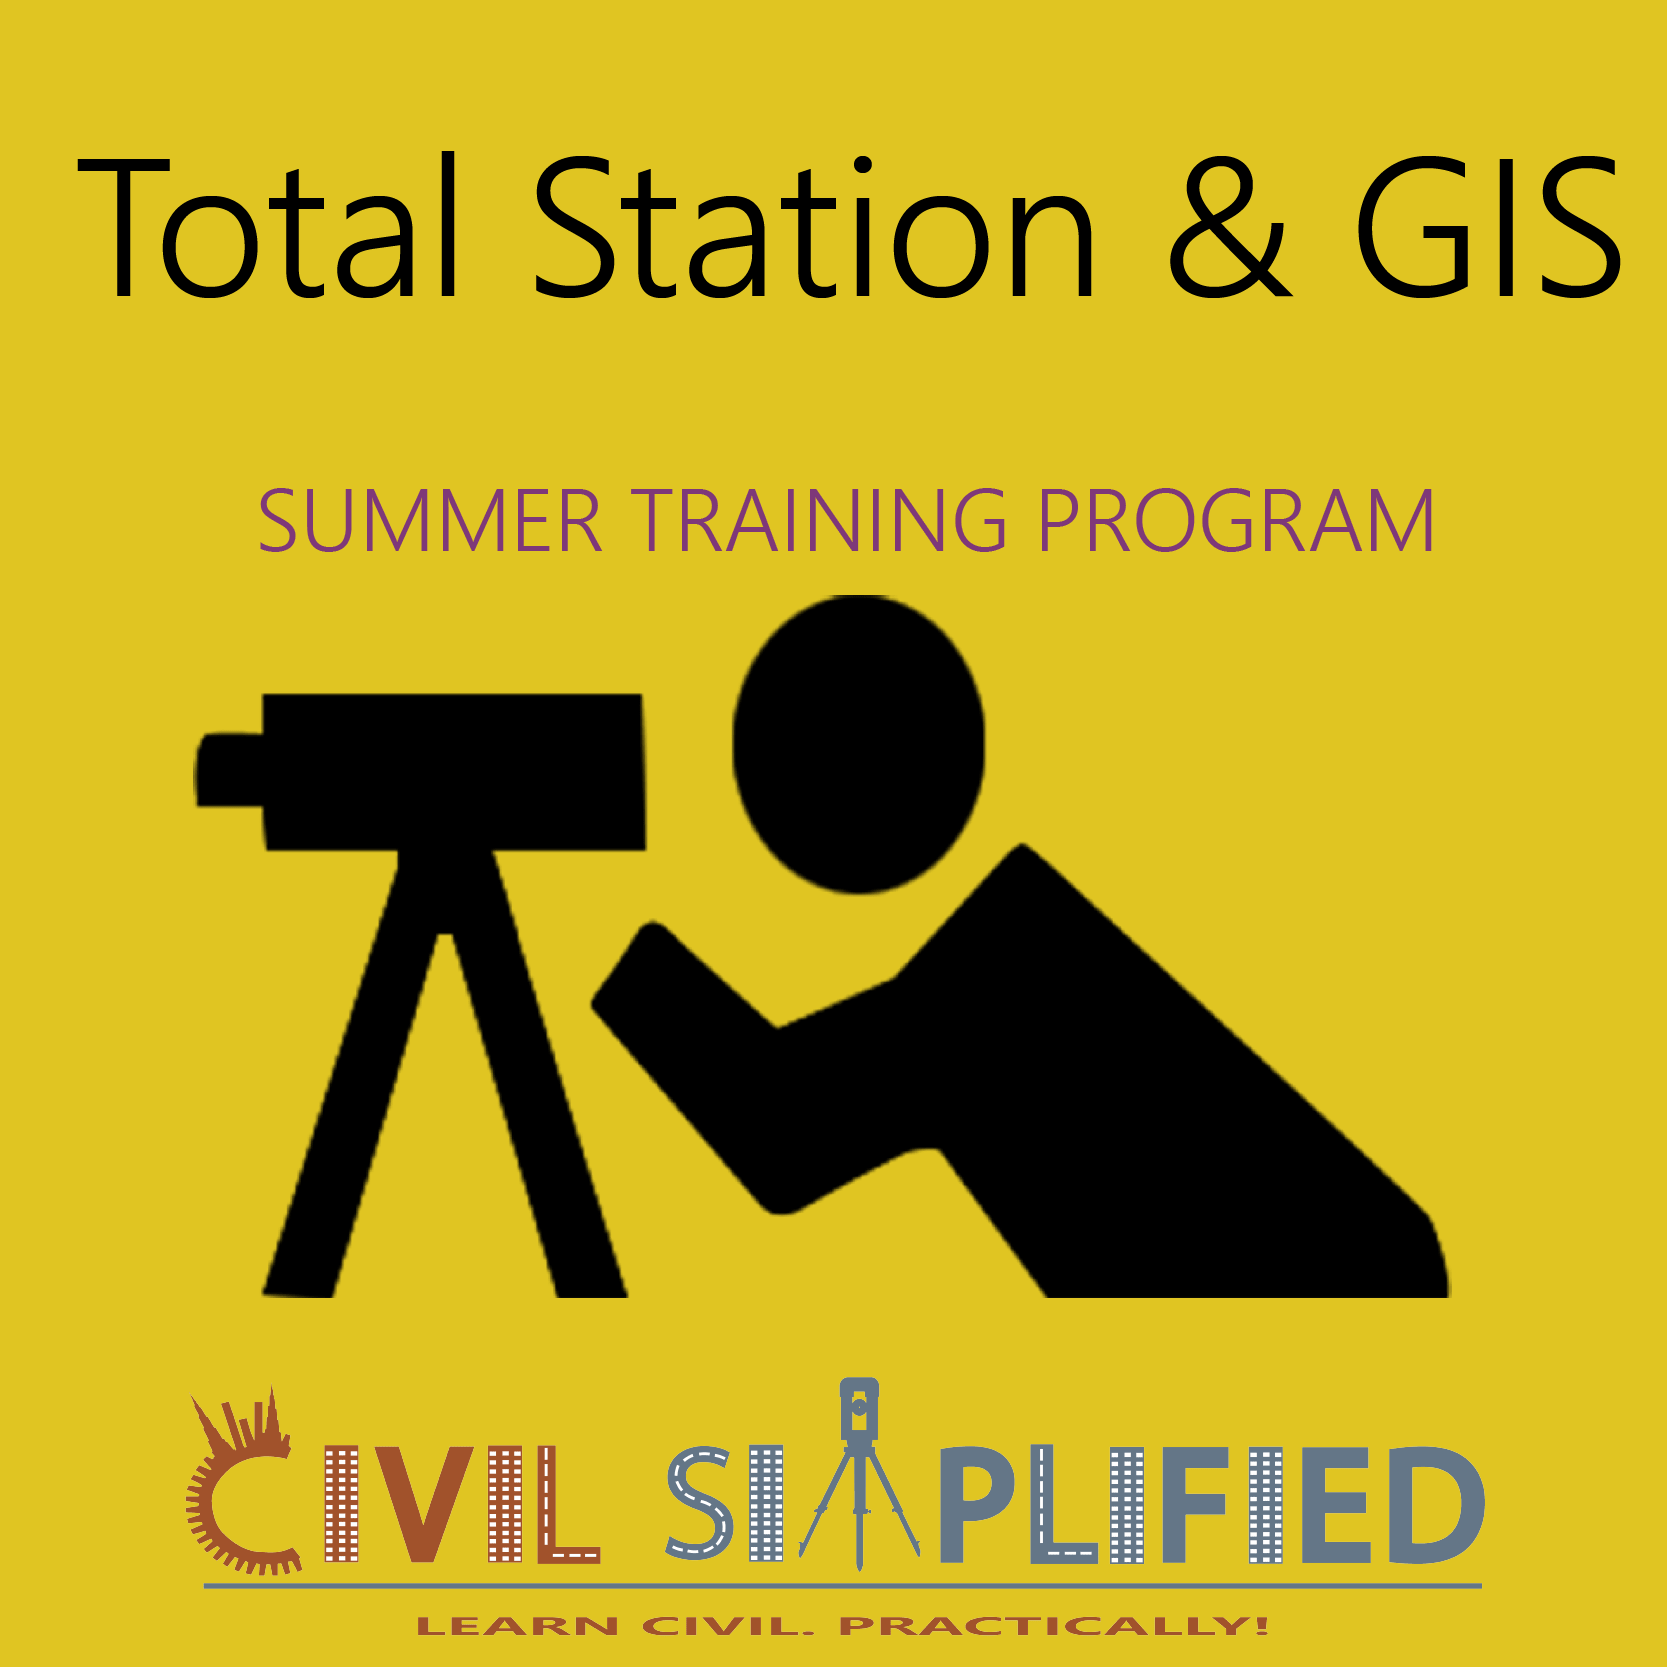 Summer Training Program in Civil Engineering - Total Station and GIS  at Skyfi Labs Center, Abids, Gate Forum  Workshop